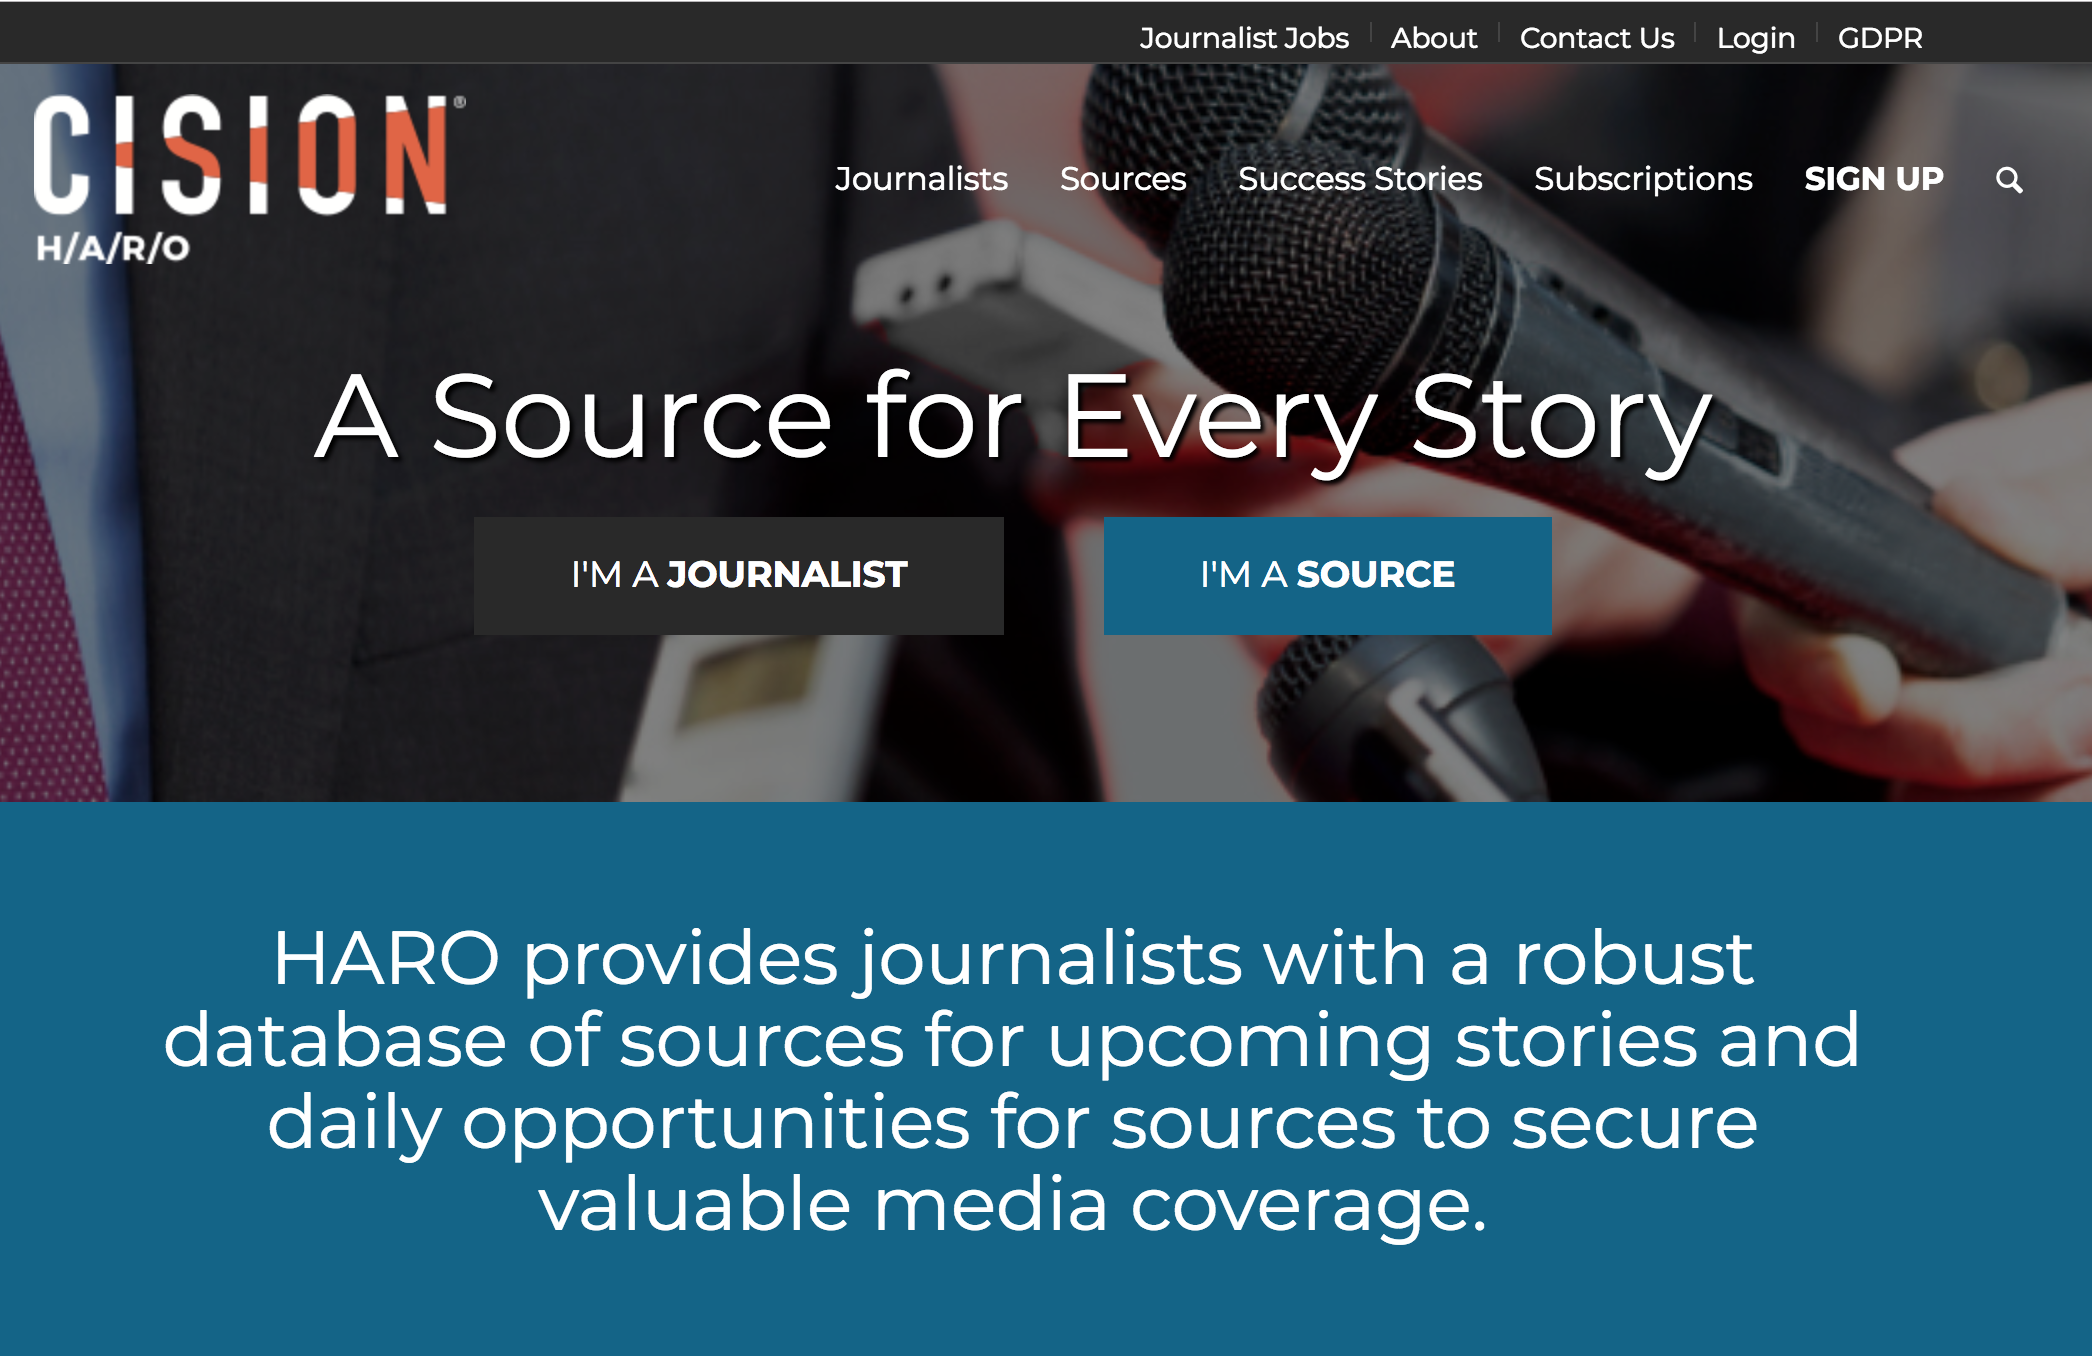 HARO – Help A Reporter Out